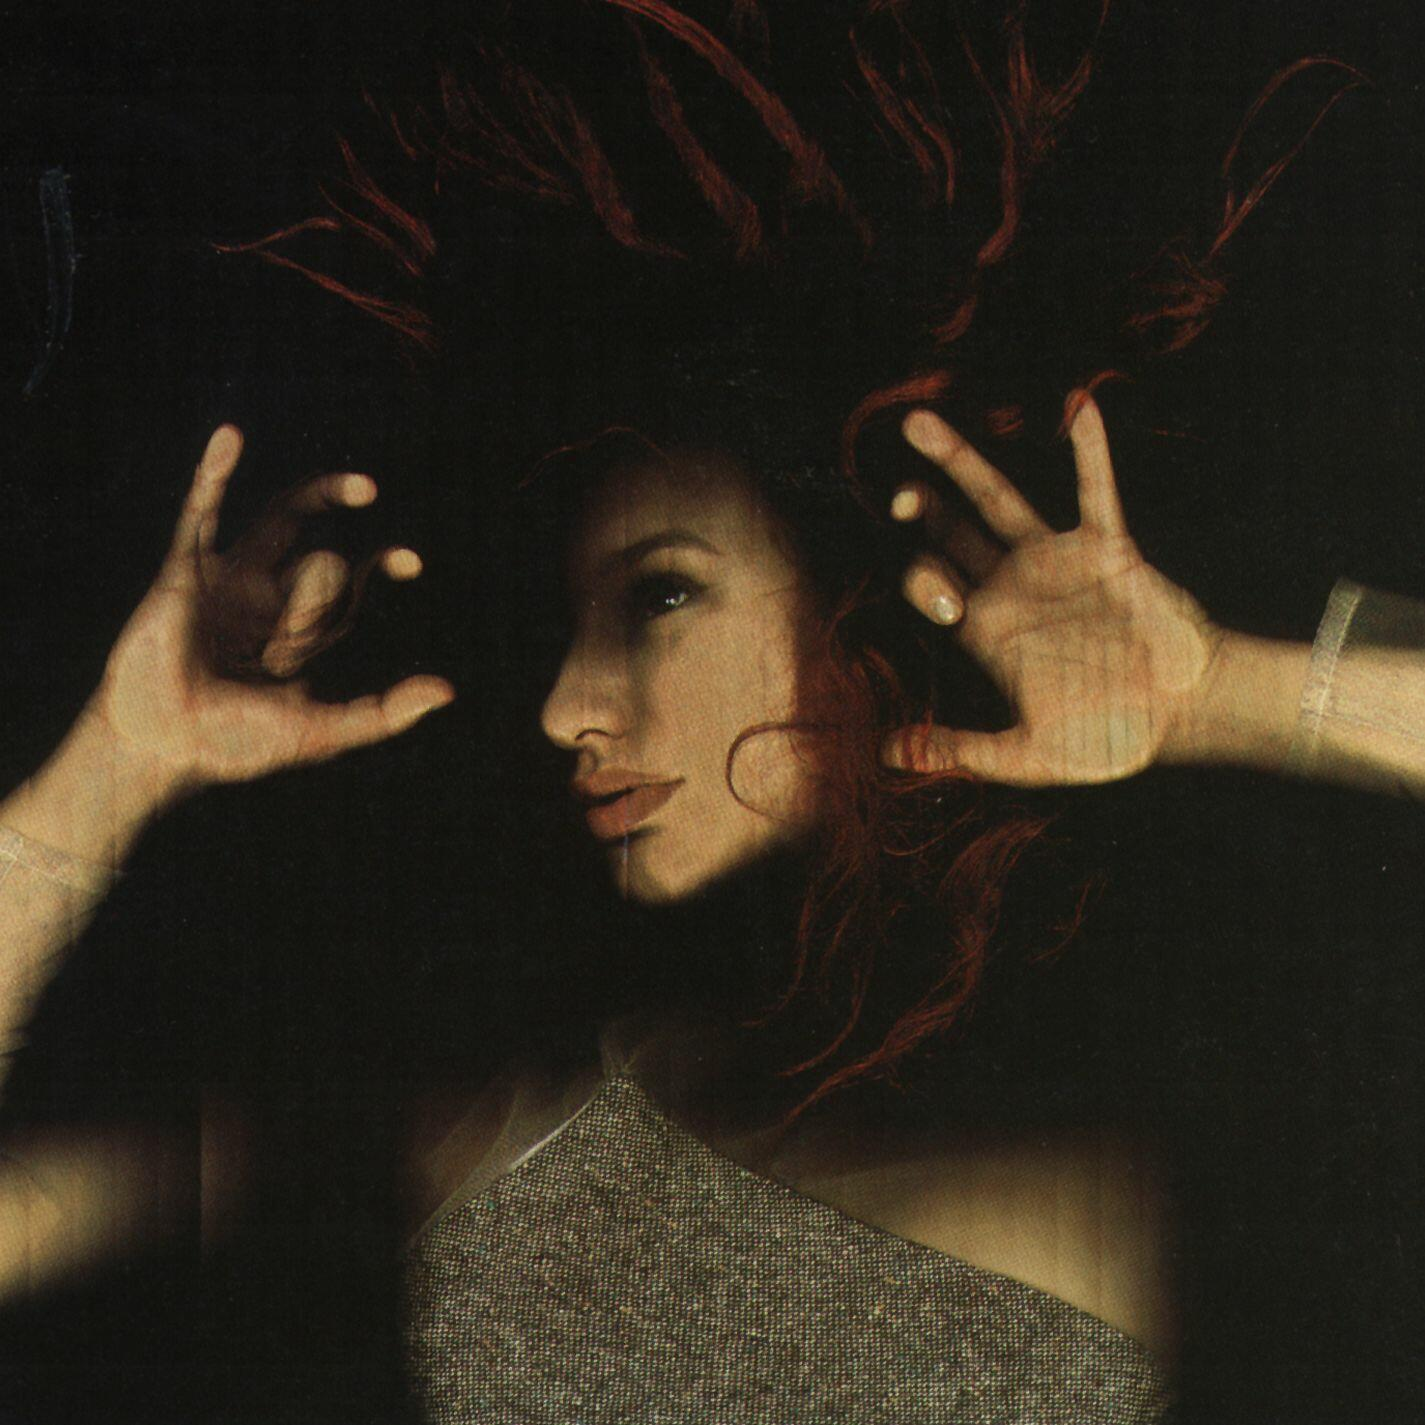 photoshoot picture of Tori Amos for her album From Choir Girl Hotel